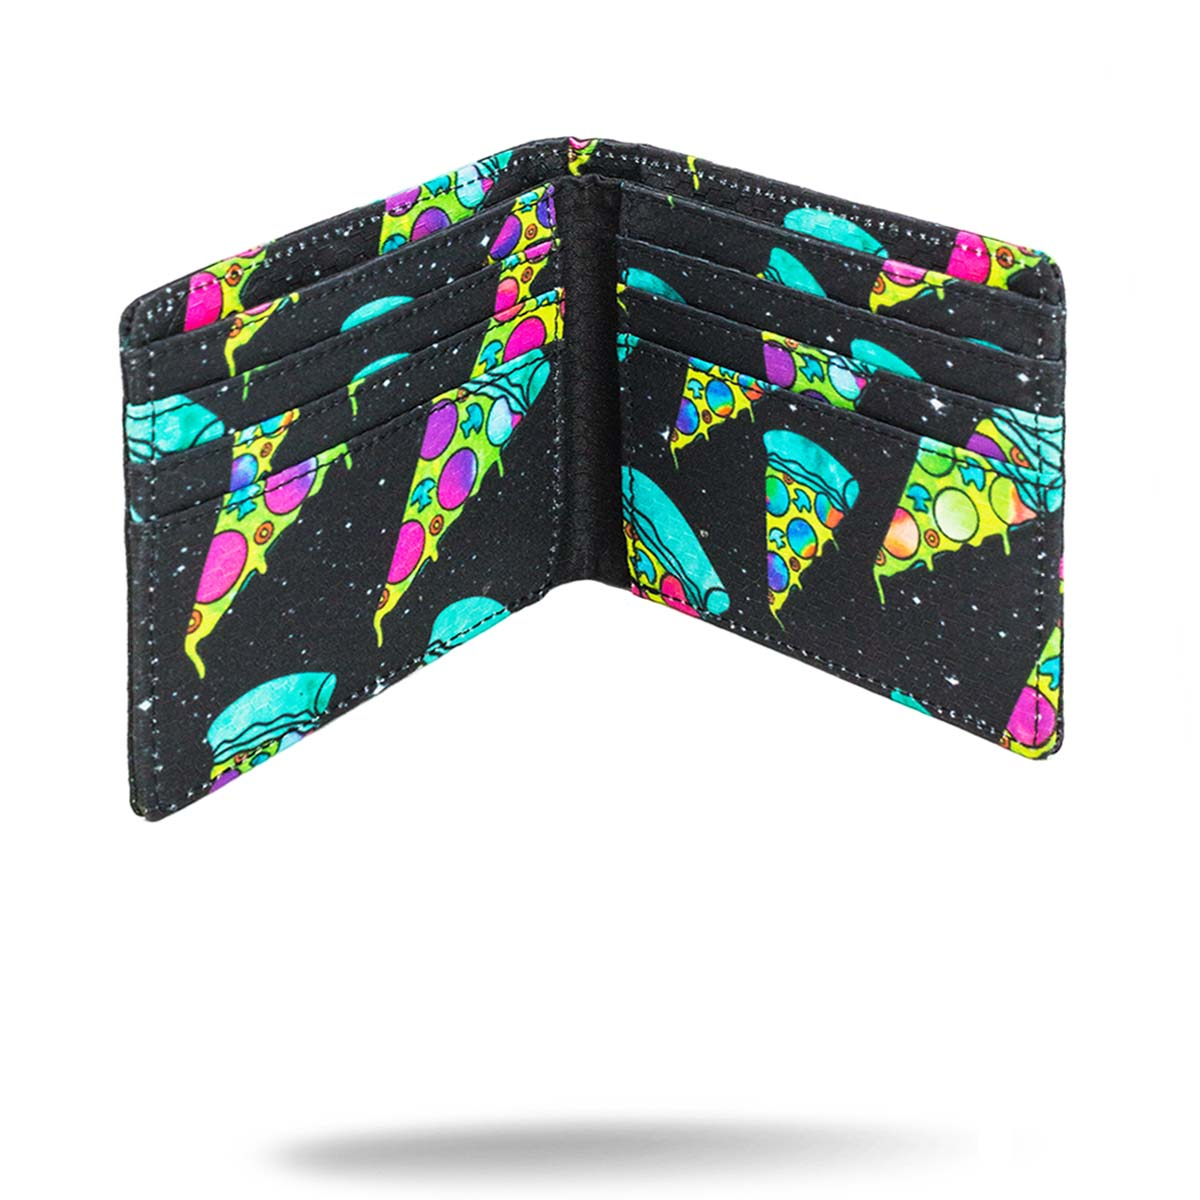 Inside view of printed pizza wallet